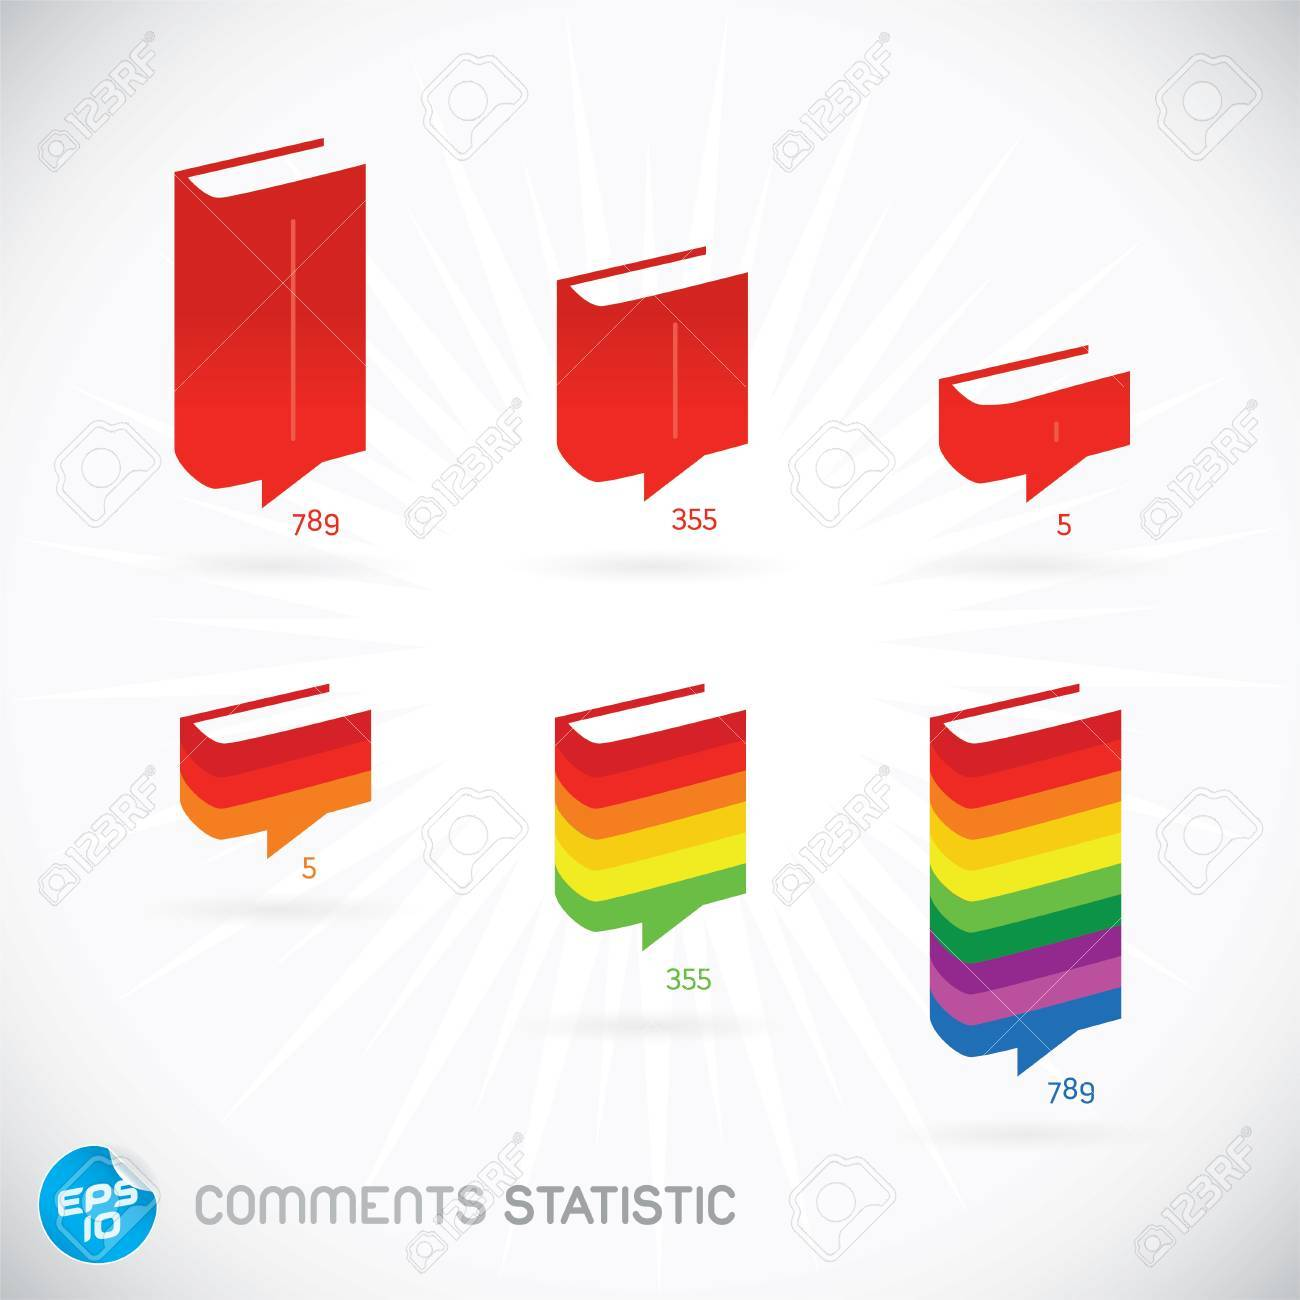 Comments Statistic Symbols, Buttons, Sign, Emblem, Logo for Web Design, User Interface, Mobile Phone, Baby, Children, People Stock Vector - 20014551